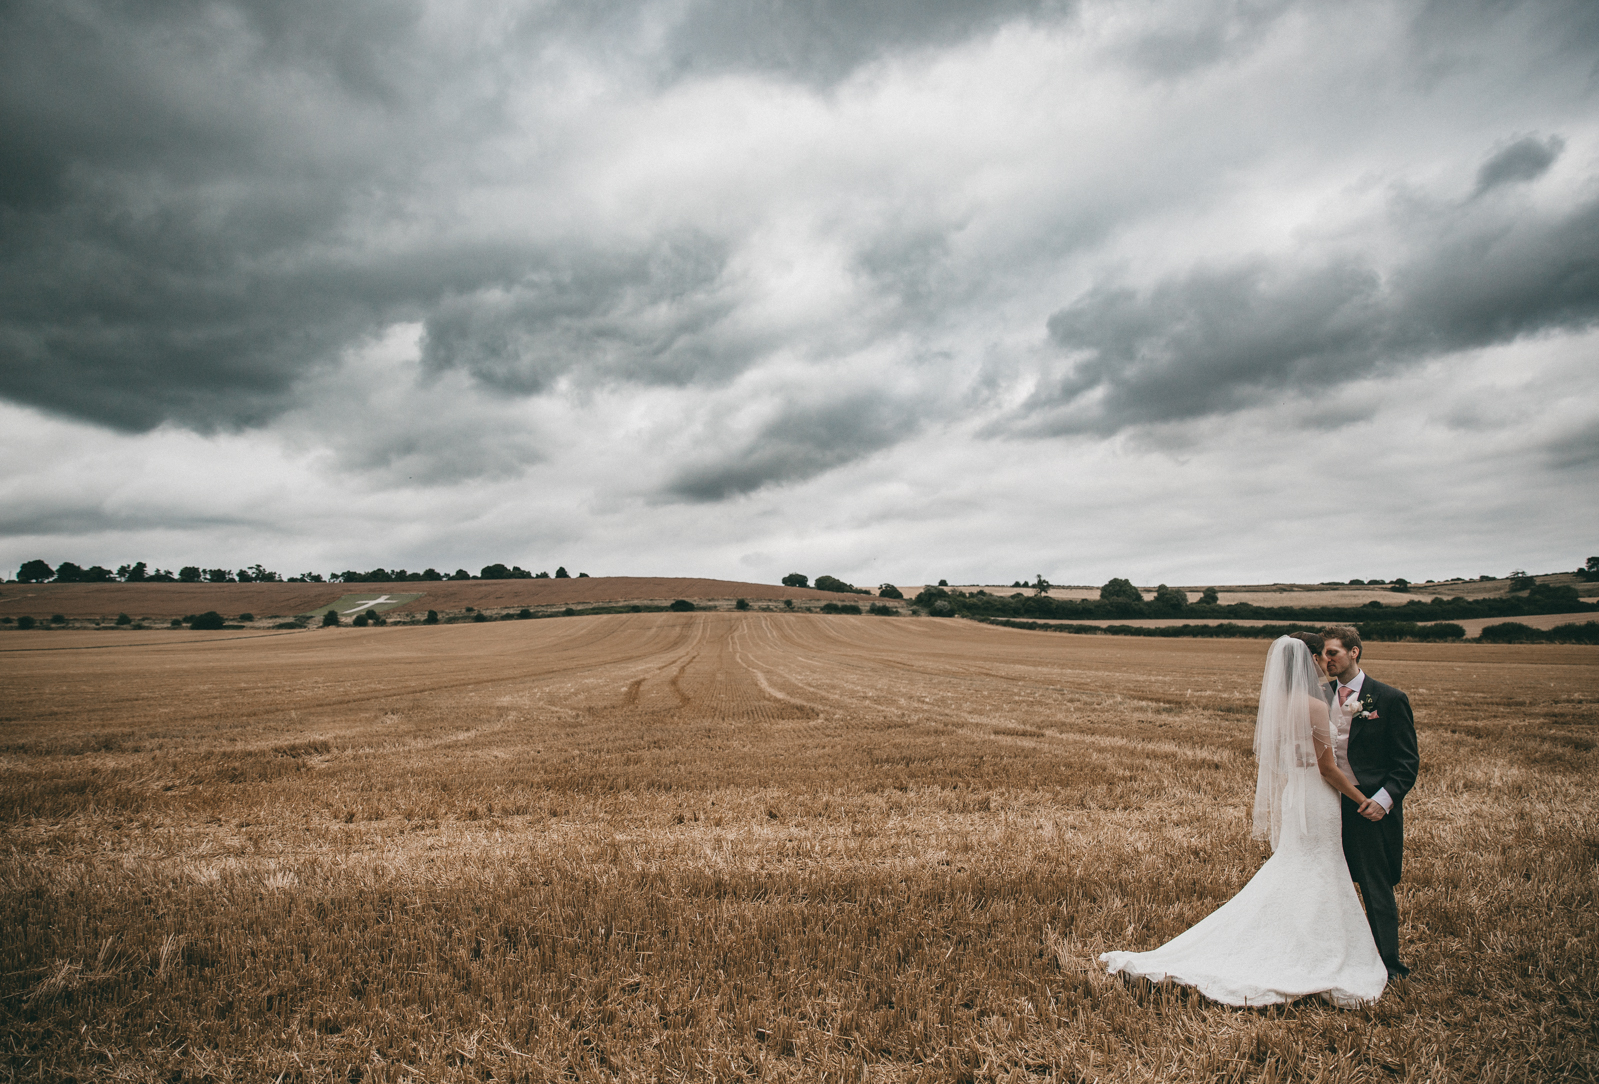 Chris Bradshaw Wedding Photography - Simon & Amanda Wedding Photos-56